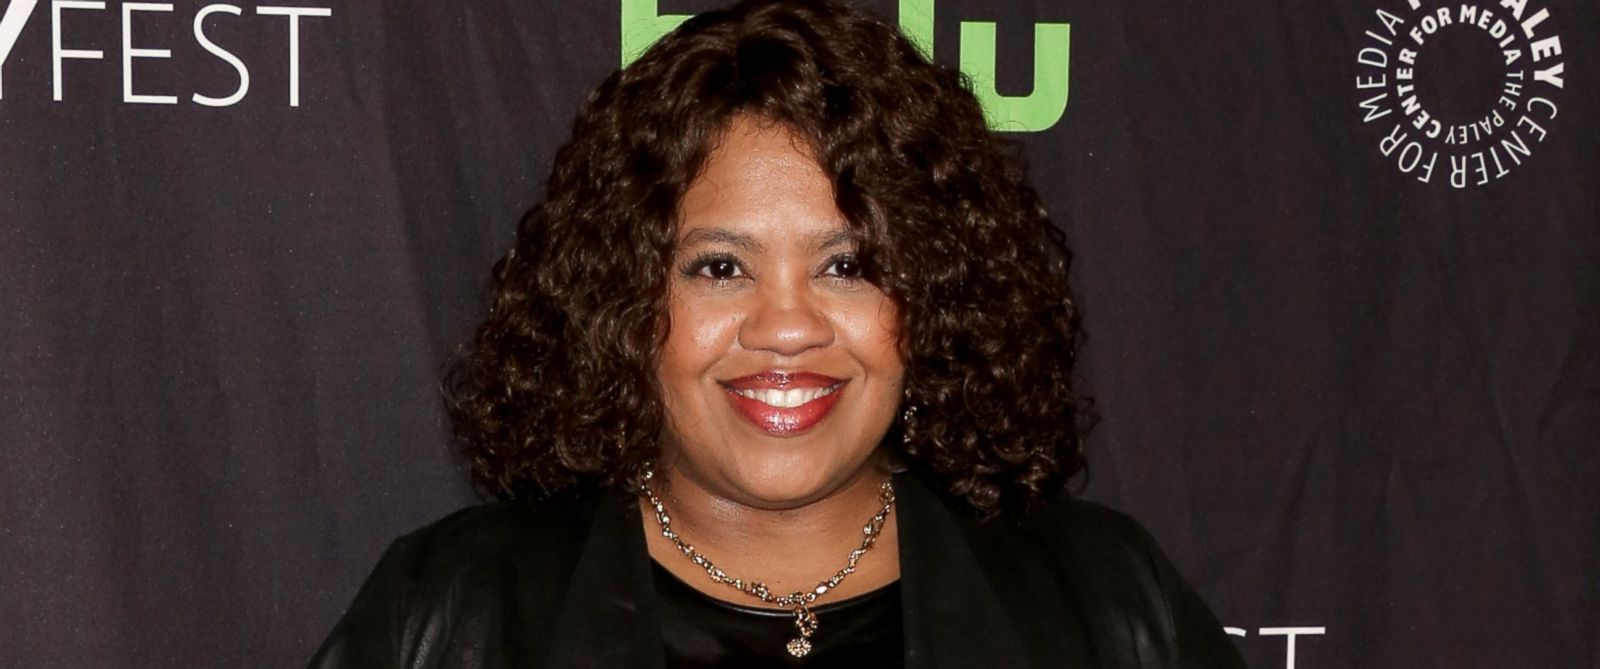 PHOTO: Chandra Wilson attends the the Paley Center for Medias 34th annual PaleyFest at the Dolby Theatre, March 19, 2017, in Hollywood, Calif.